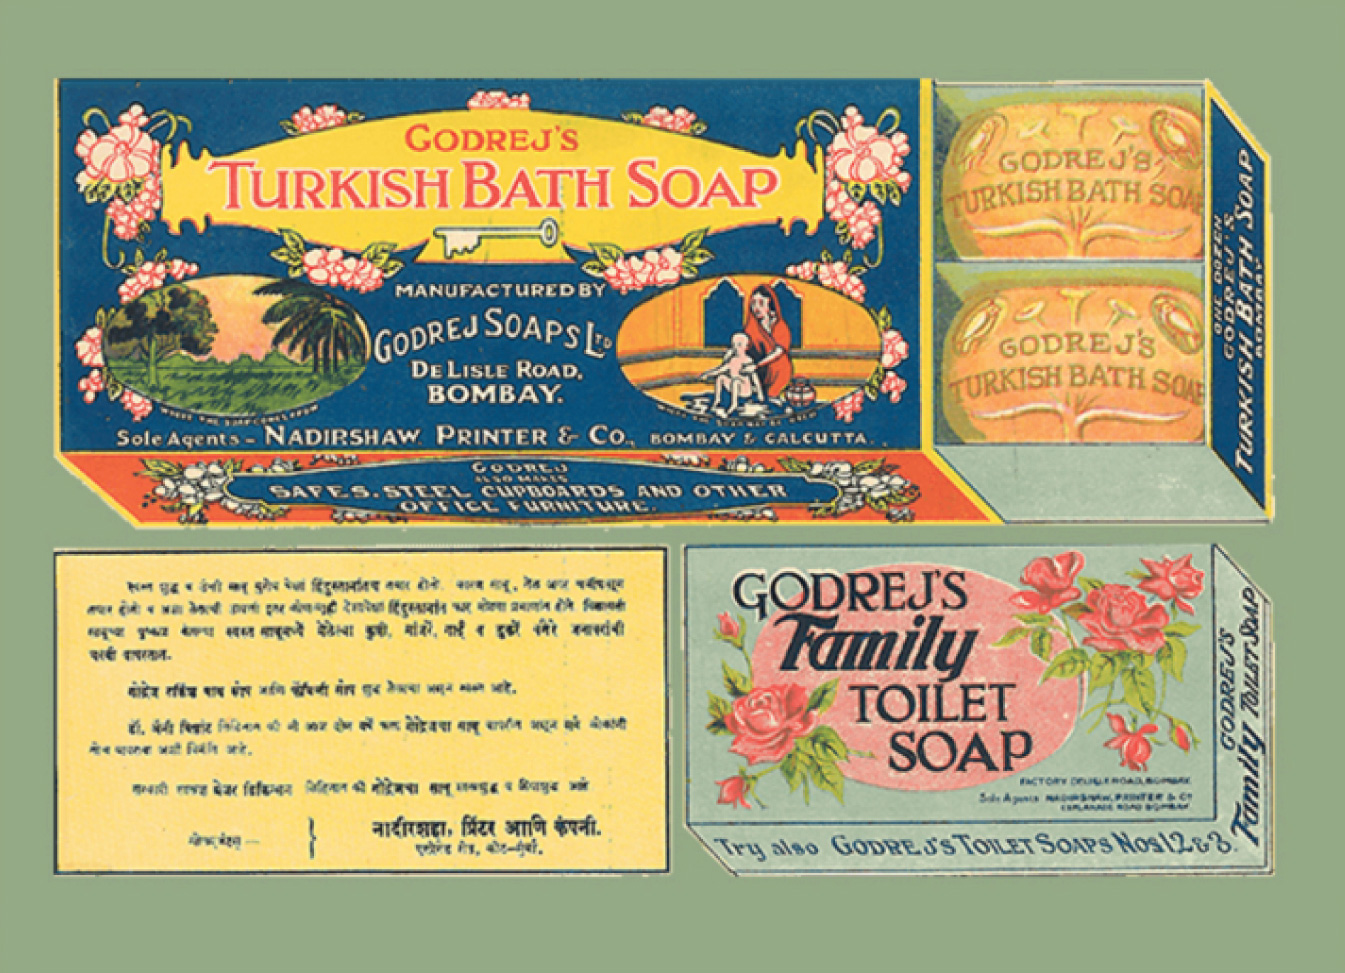 World's first vegetable oil soap